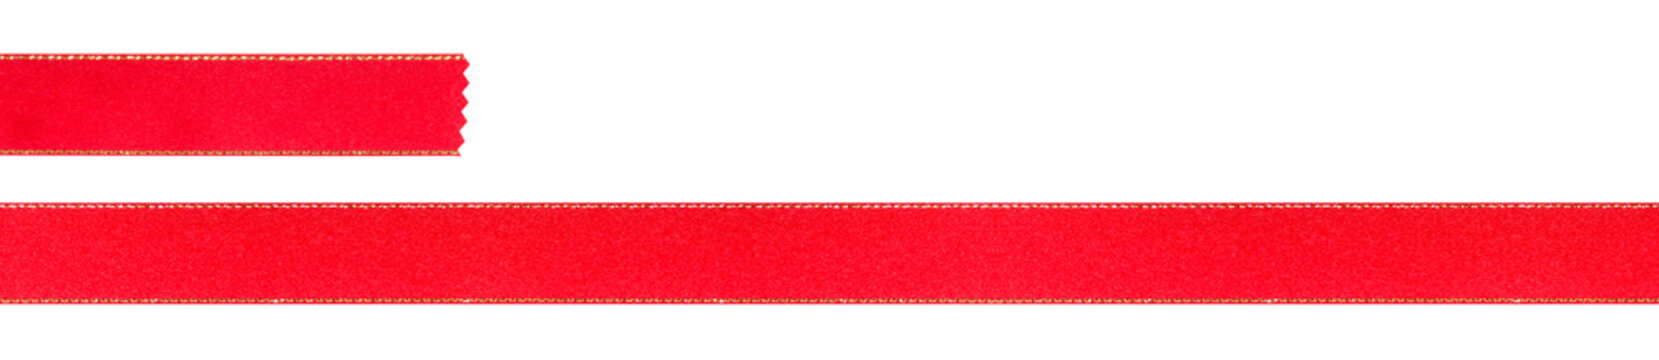 Xmas red ribbons with gold edges for long stripe and short stripe isolated on white background (Clipping Path included) for graphic use, Christmas or Valentine holiday decorative ornament concept